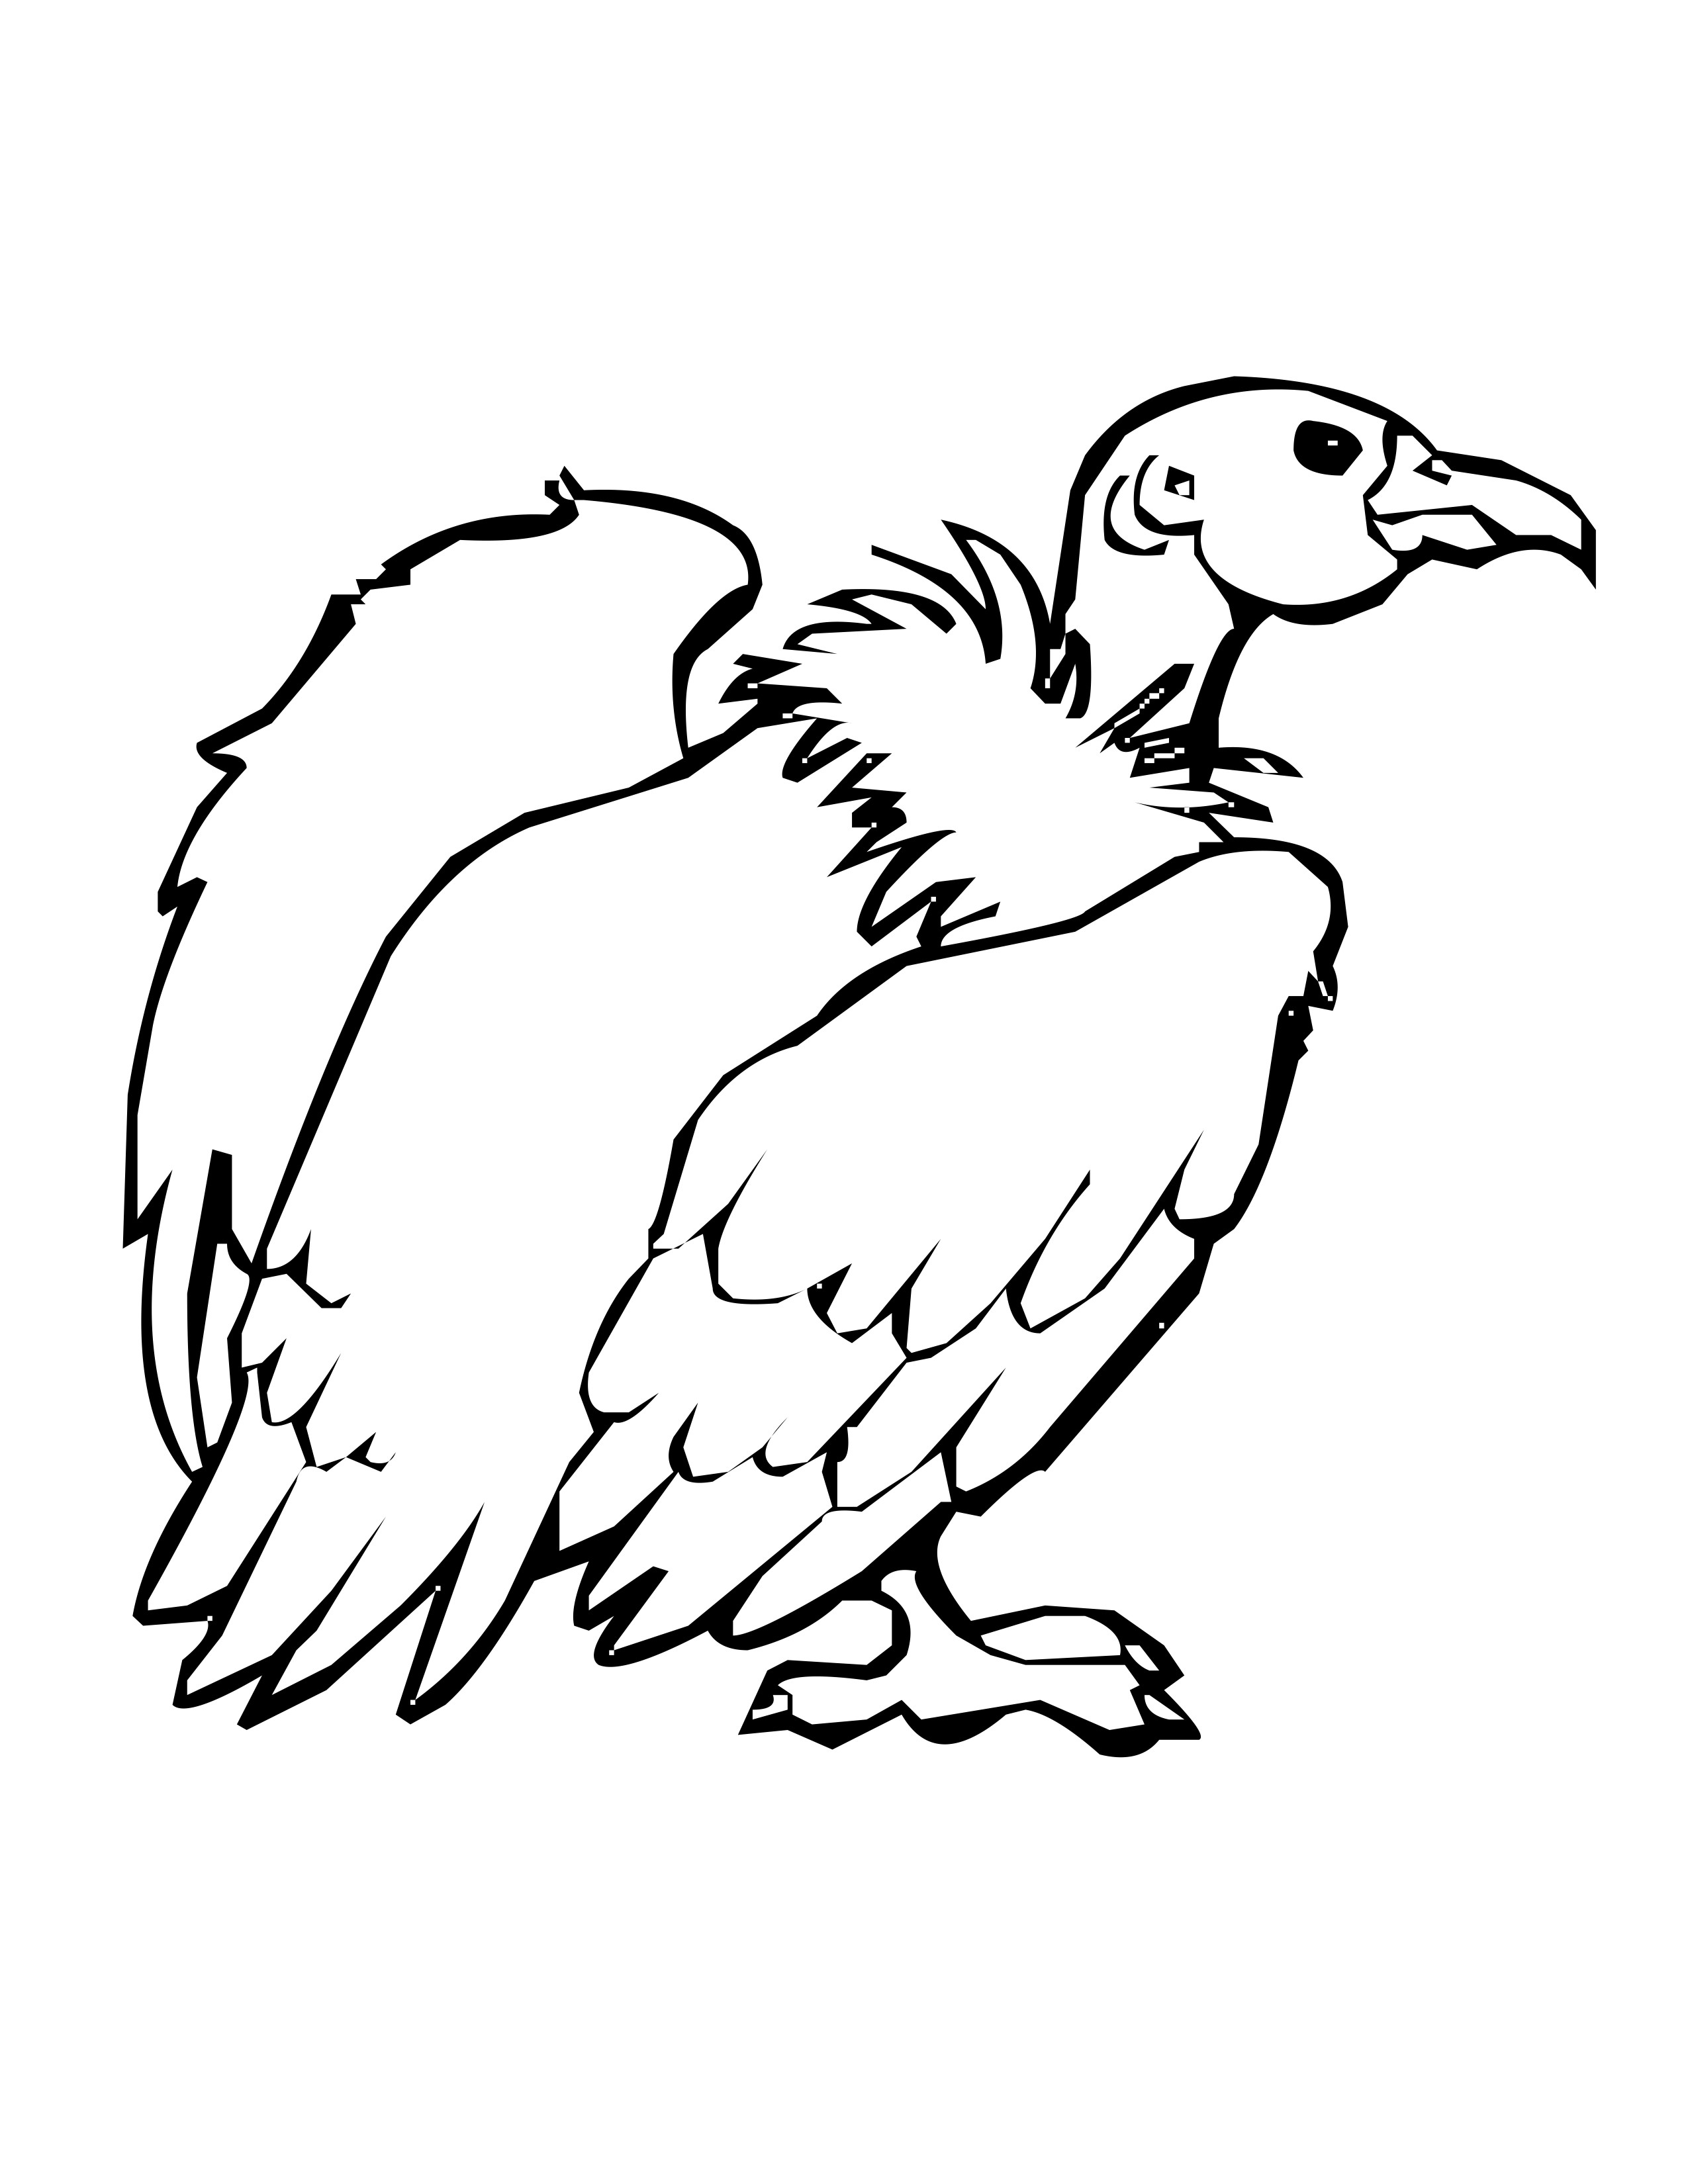 vulture coloring pages vulture coloring pages preschool and kindergarten pages coloring vulture